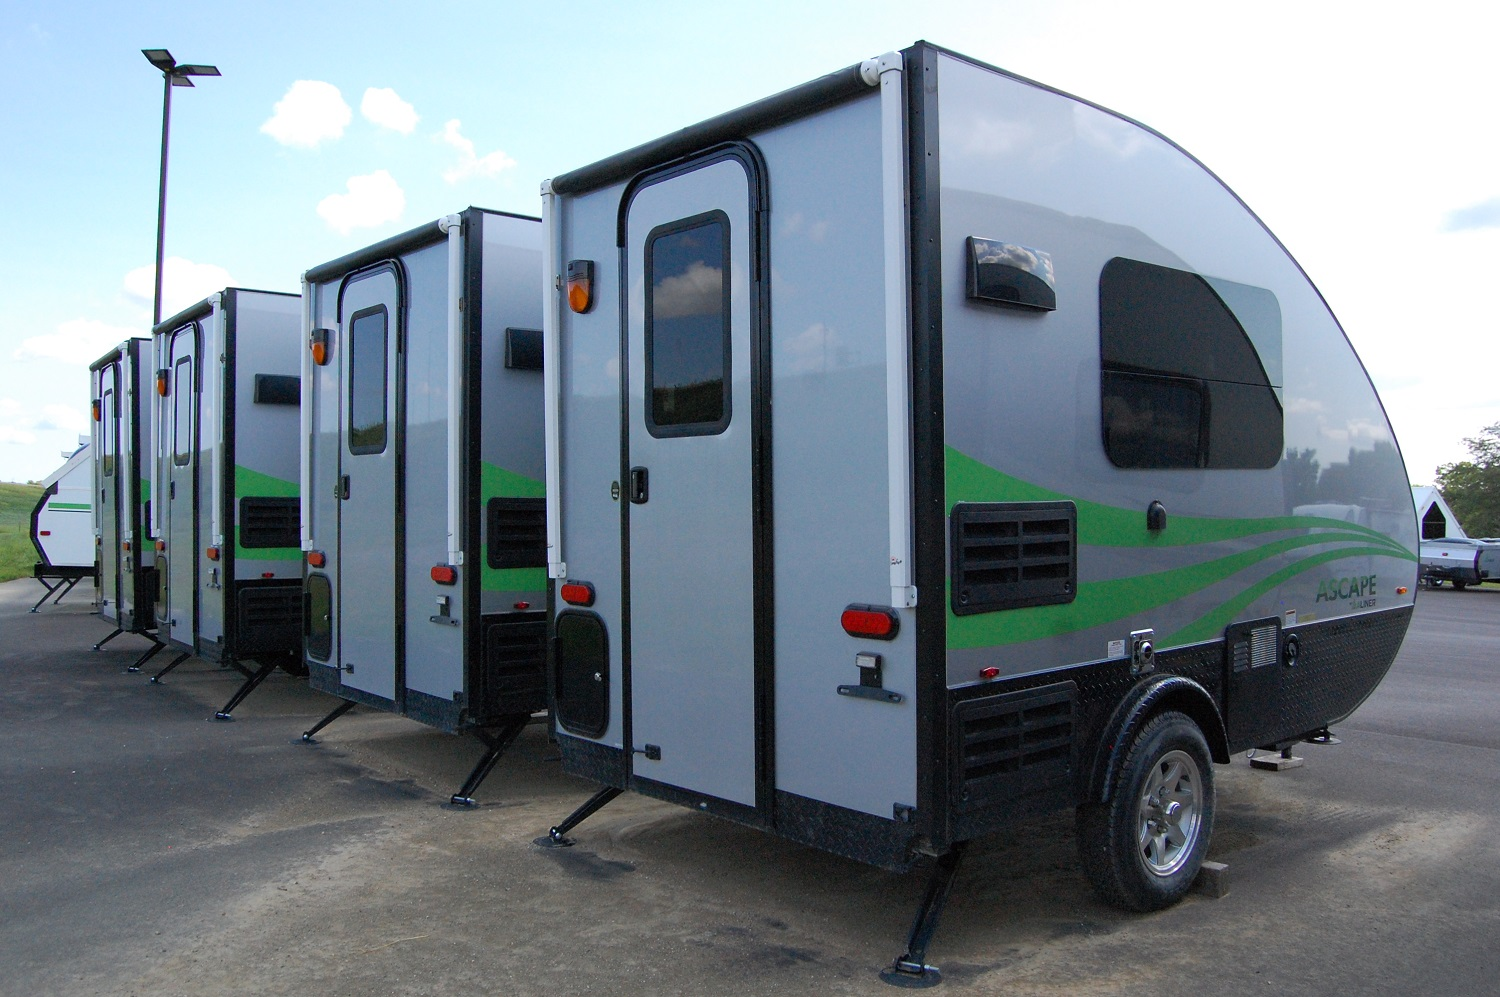 2018 Aliner Ascape Firsthand Report The Small Trailer Enthusiast